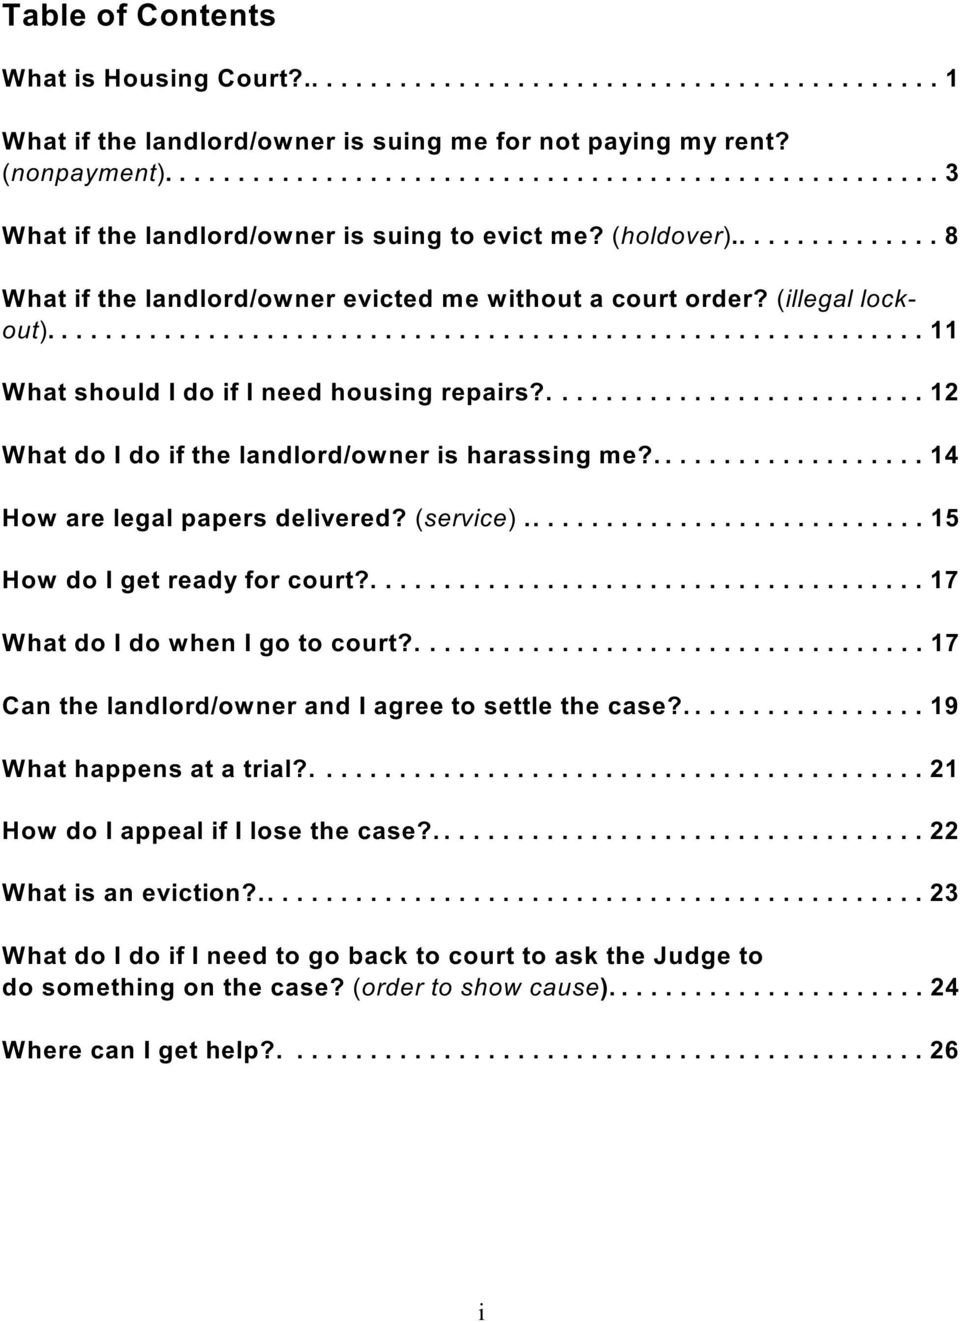 (illegal lockout)............................................................ 11 What should I do if I need housing repairs?.......................... 12 What do I do if the landlord/owner is harassing me?